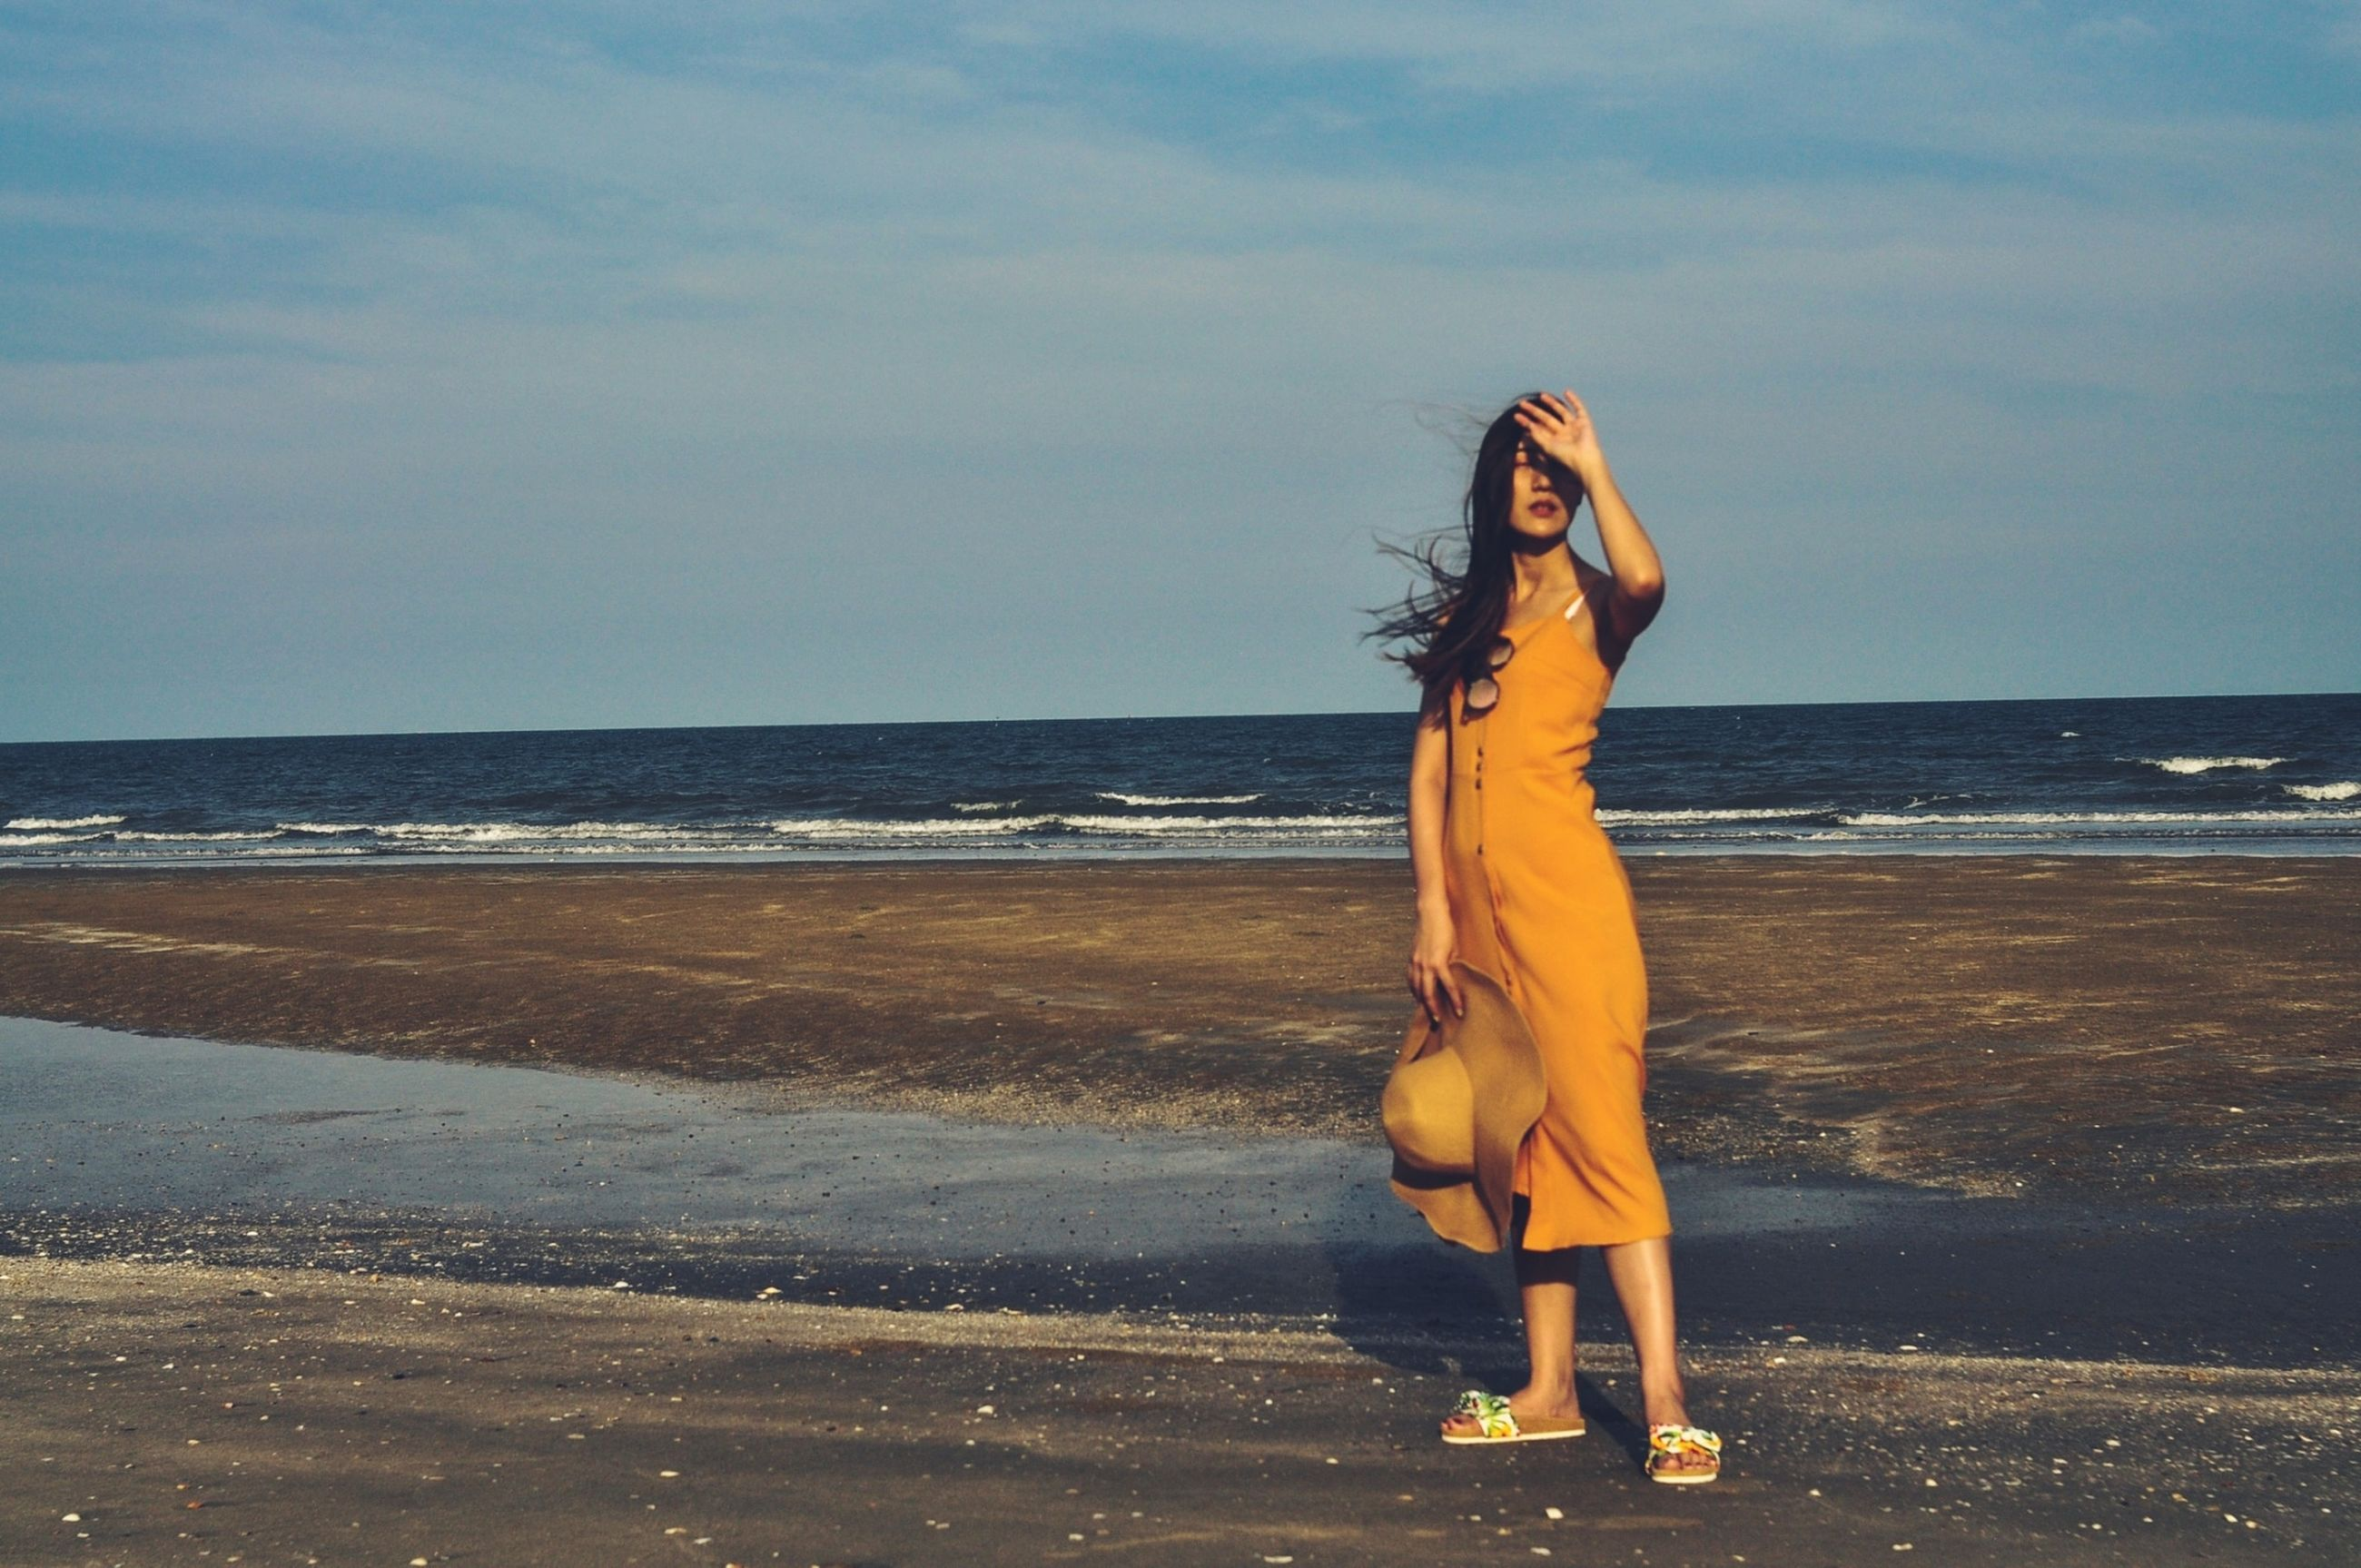 sea, beach, water, land, one person, sky, horizon over water, adult, full length, nature, women, horizon, ocean, long hair, young adult, clothing, standing, beauty in nature, hairstyle, sunlight, shore, leisure activity, fashion, vacation, sand, dress, blue, morning, holiday, lifestyles, trip, motion, coast, tranquility, outdoors, day, person, scenics - nature, wave, walking, cloud, female, body of water, casual clothing